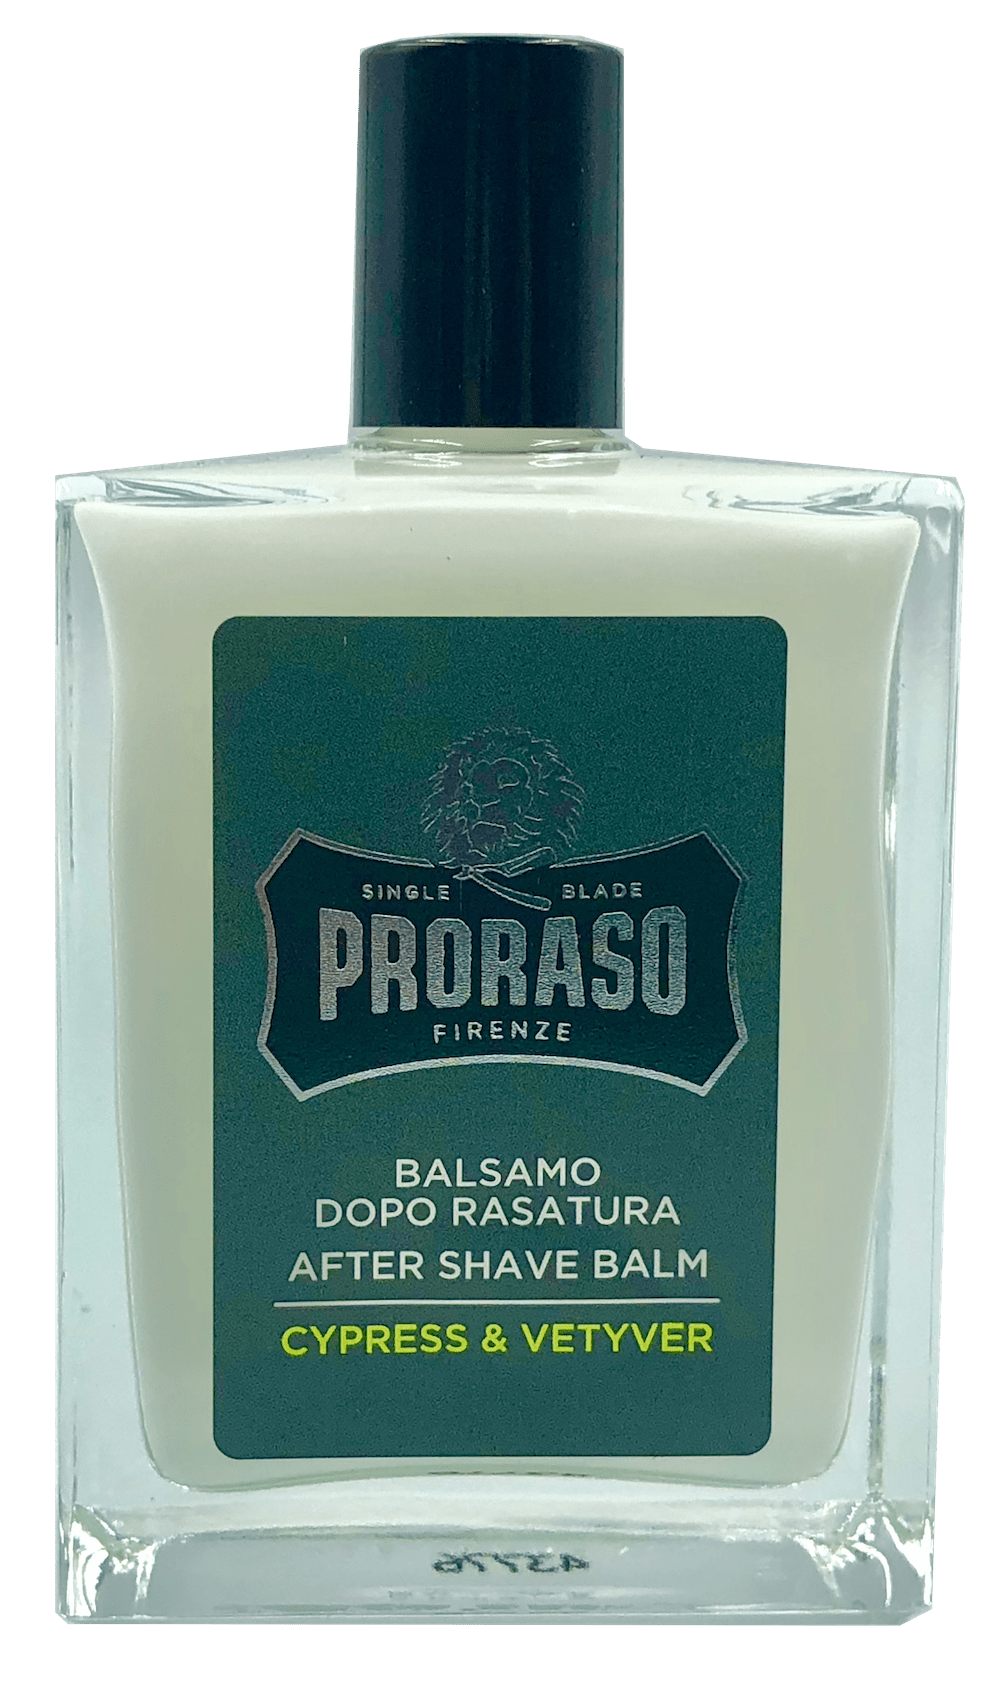 After Shave Balm (Cypress & Vetyver)